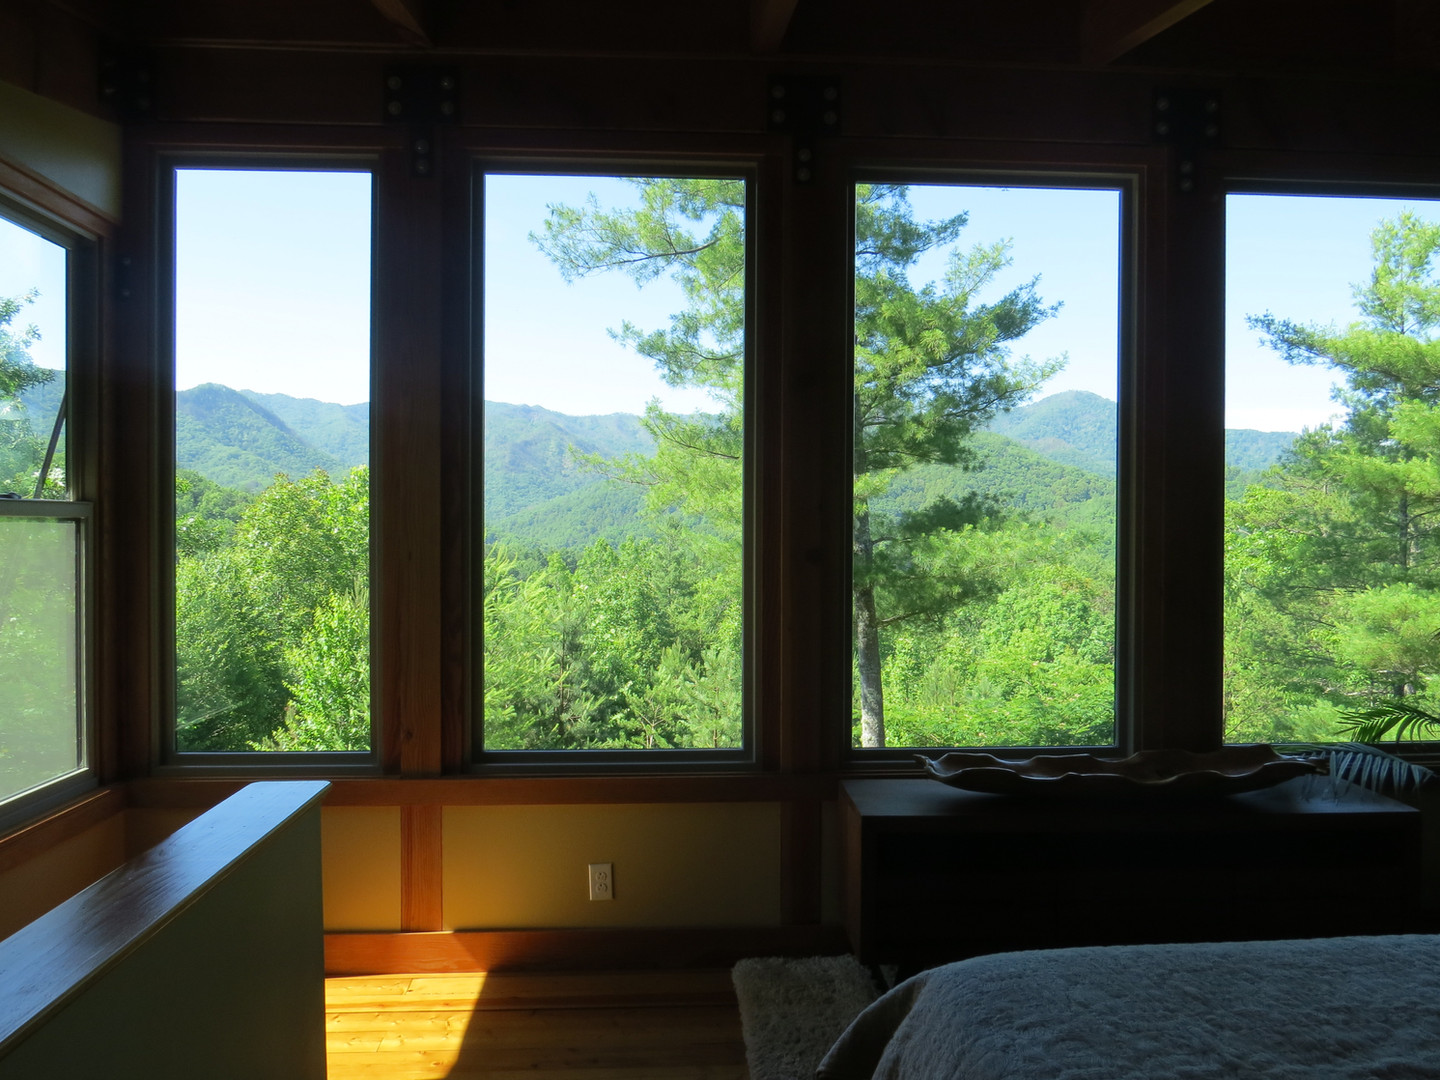 The view from the king bed in the upstairs sleeping area is beyond impressive.